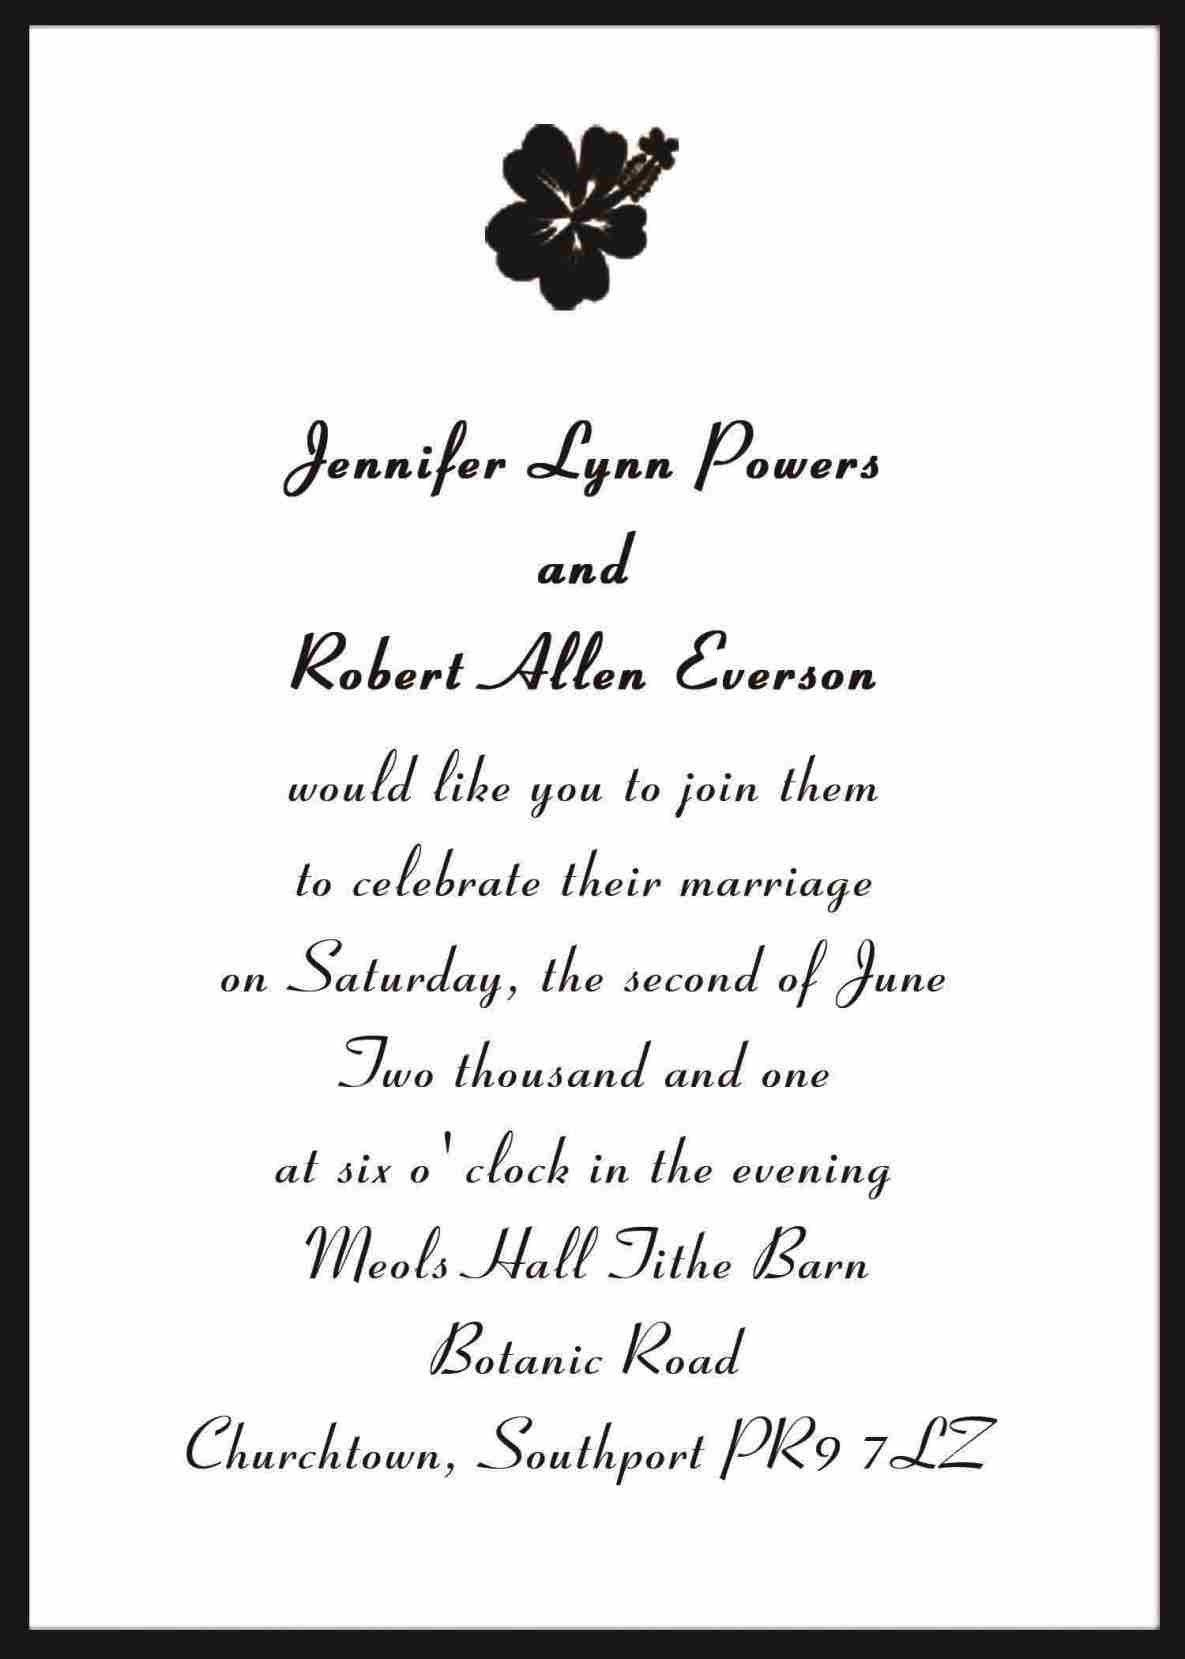 Wedding Invitation Wording Uk Traditional Wedding Invitations Online Wedding Invitations Templates Traditional Wedding Invitation Wording